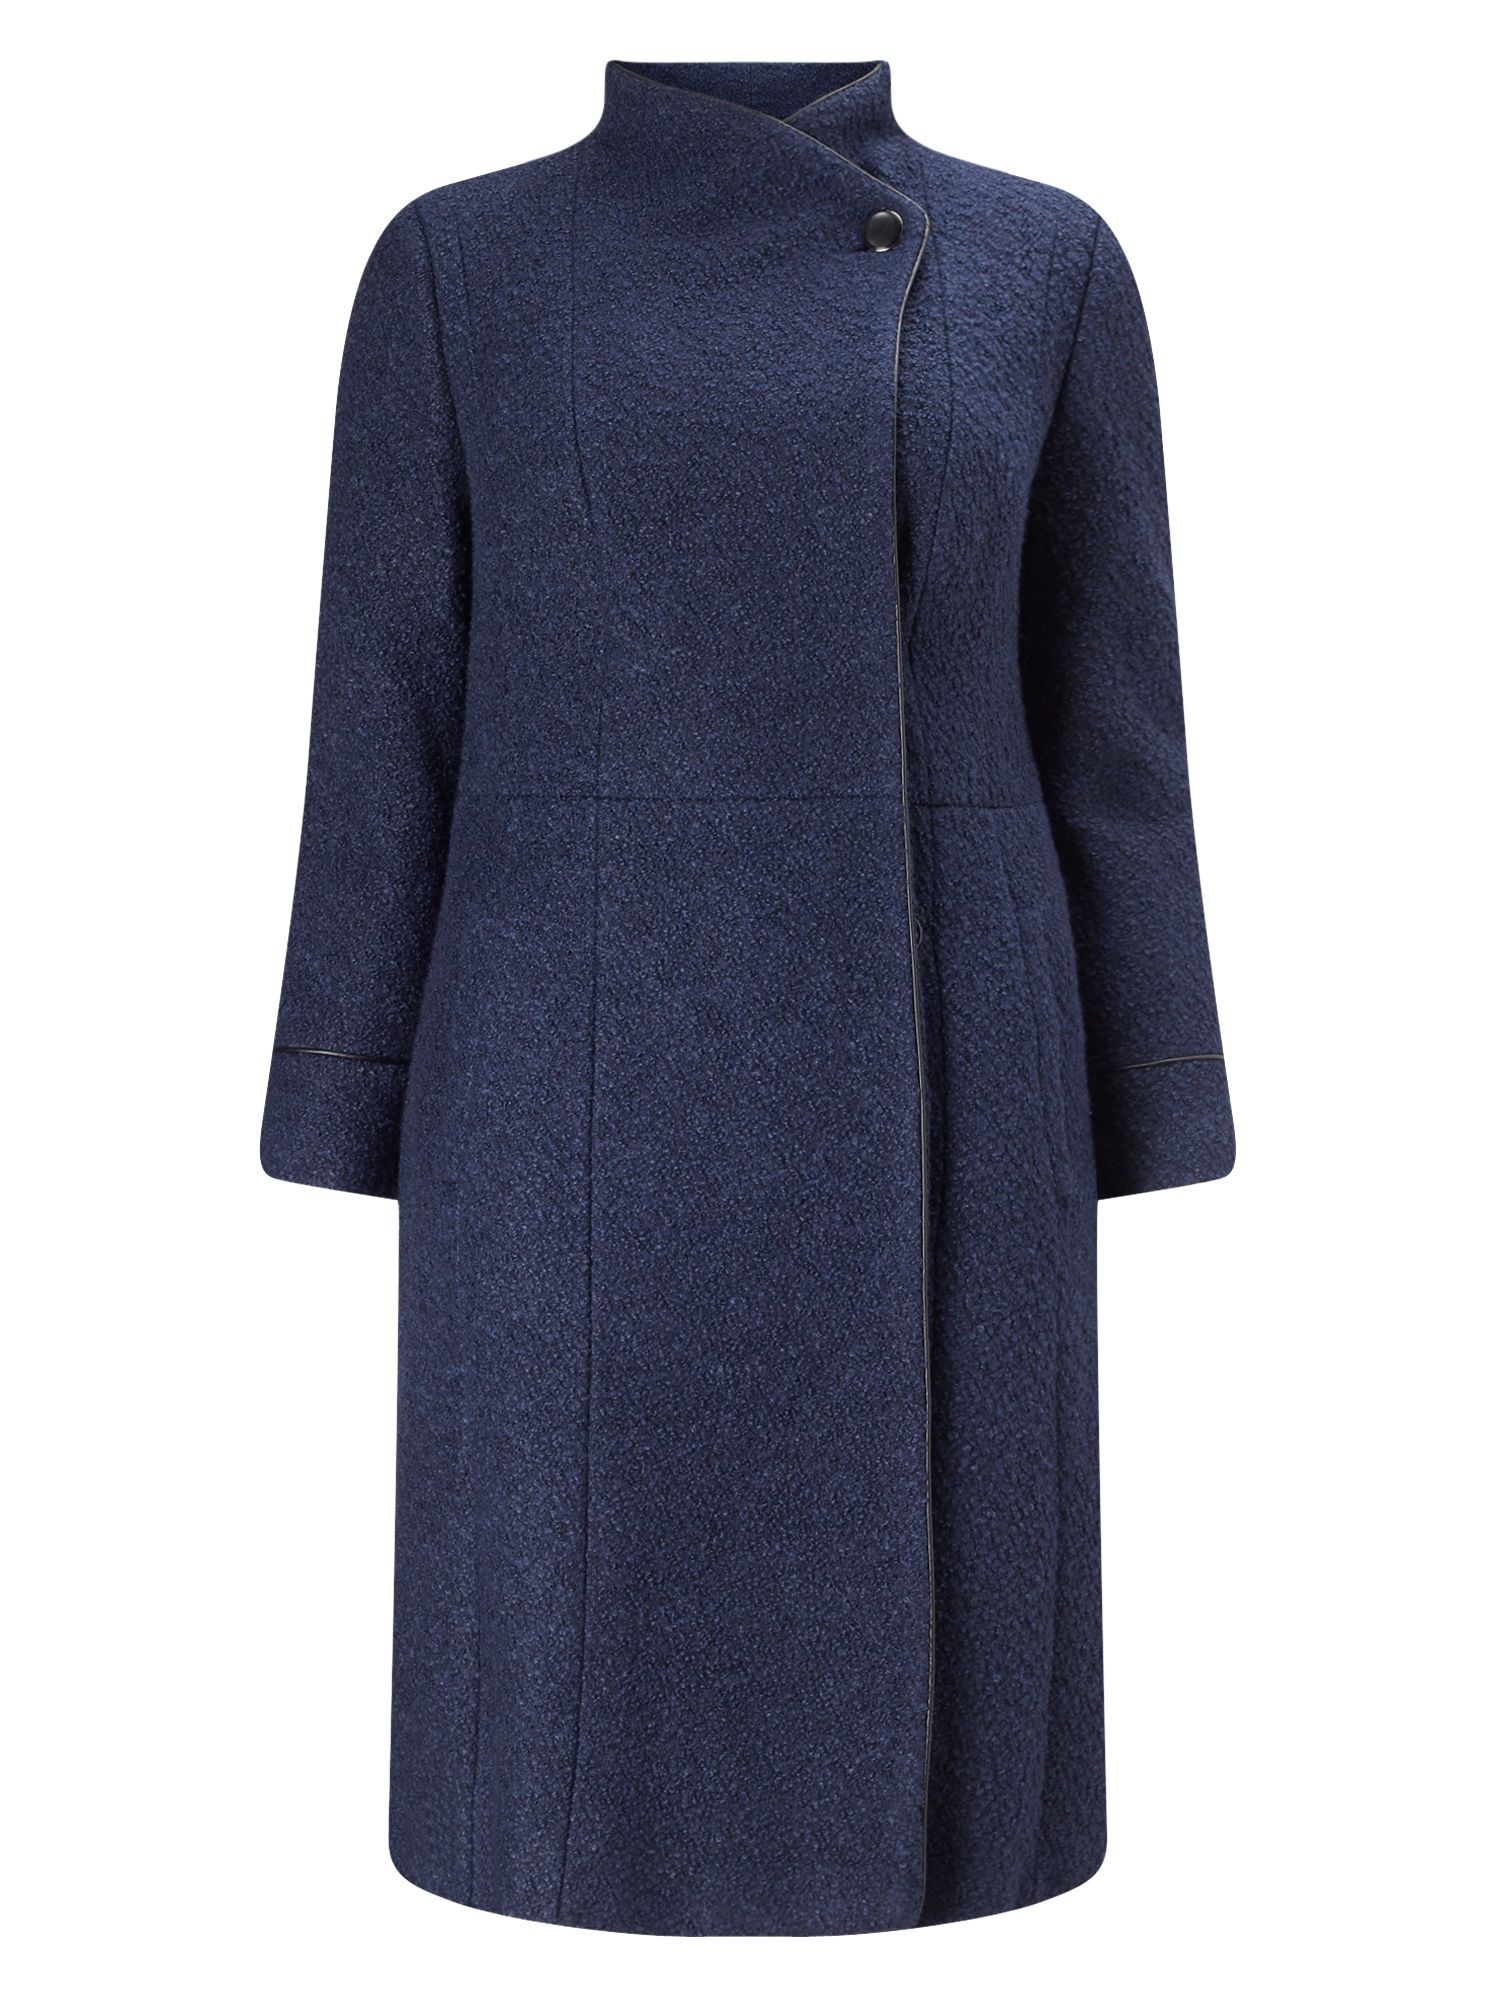 Studio 8 Verity Coat, Blue